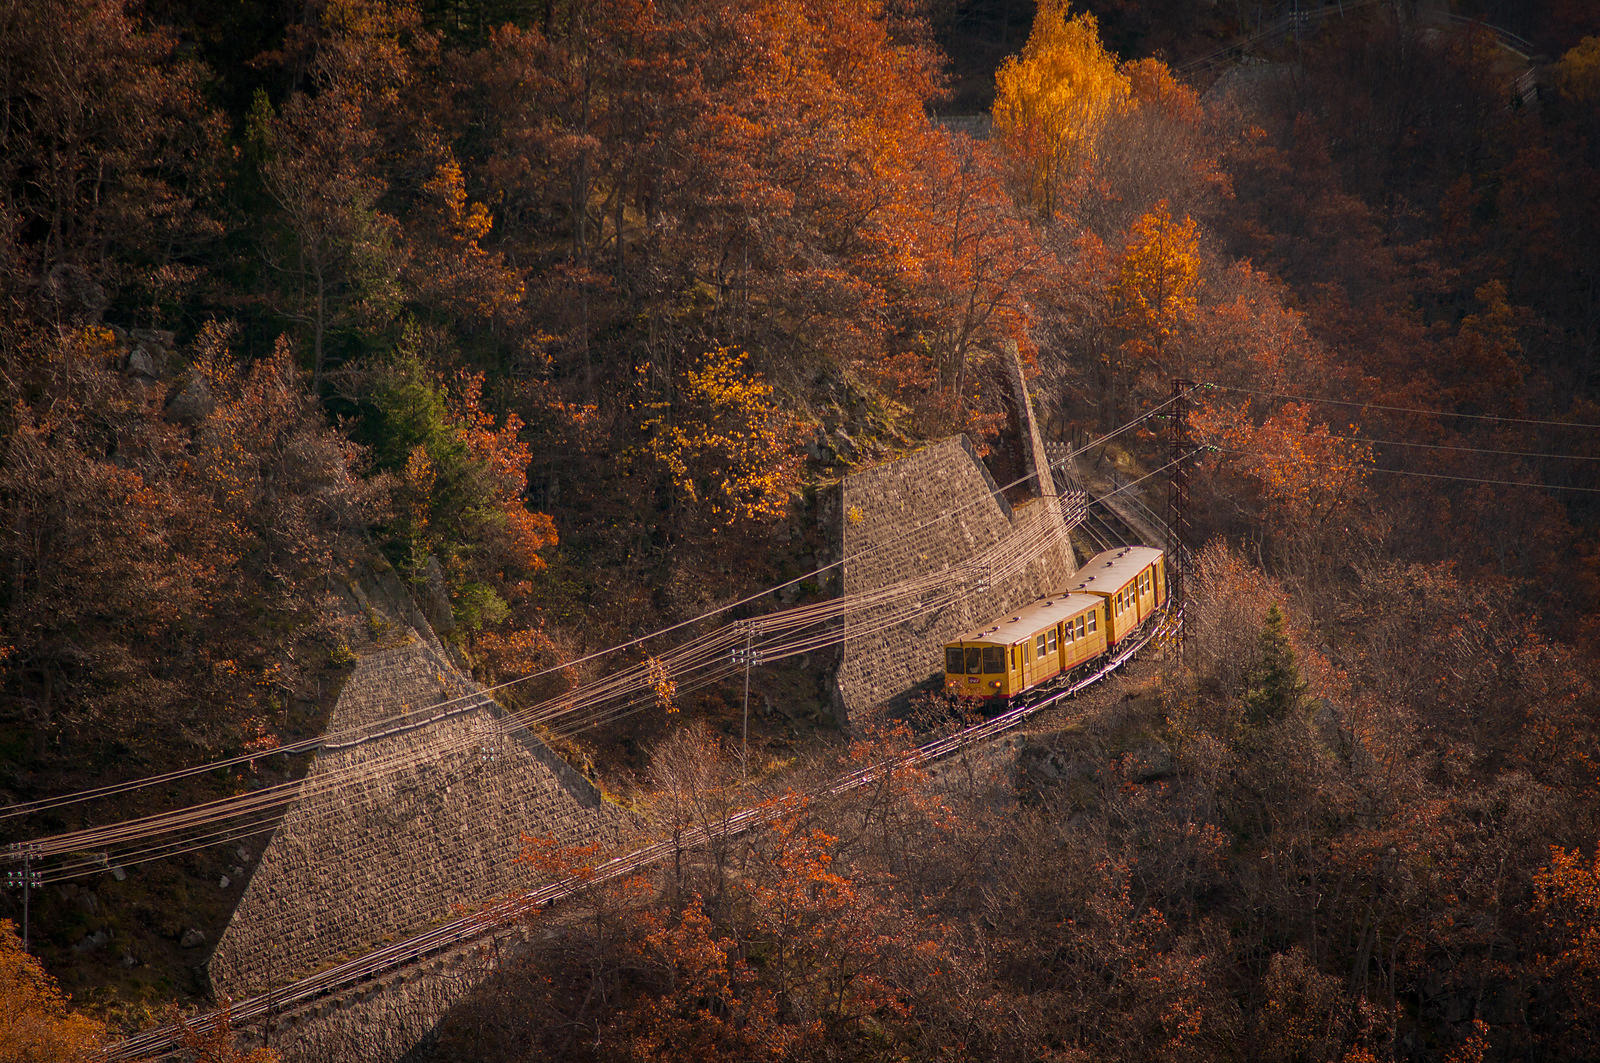 IGP6623: France, Pyrénées Orientales: The Train Jaune